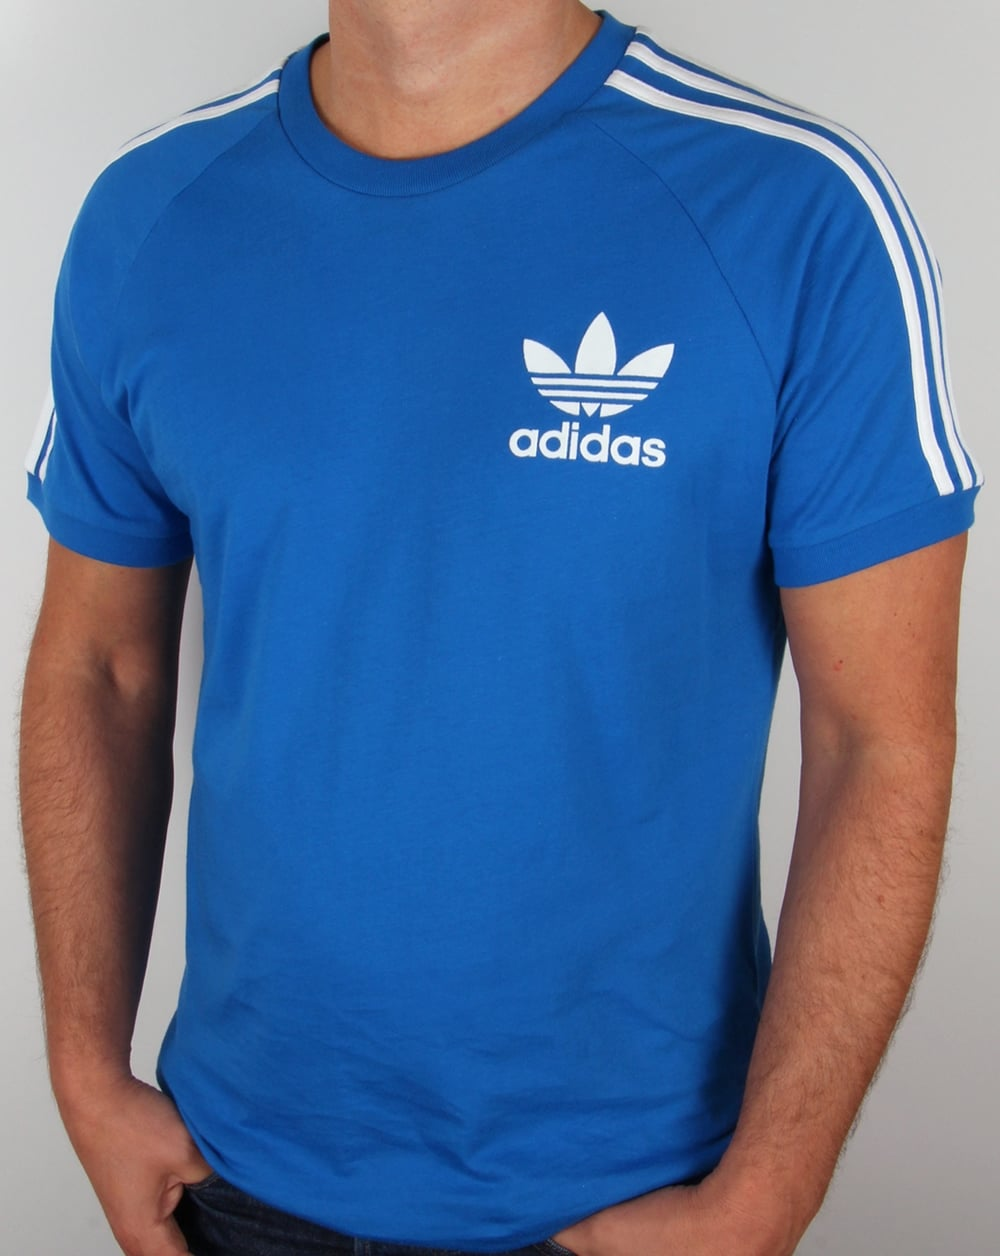 Adidas originals 3 stripes t shirt bluebird blue for Adidas lotus t shirt